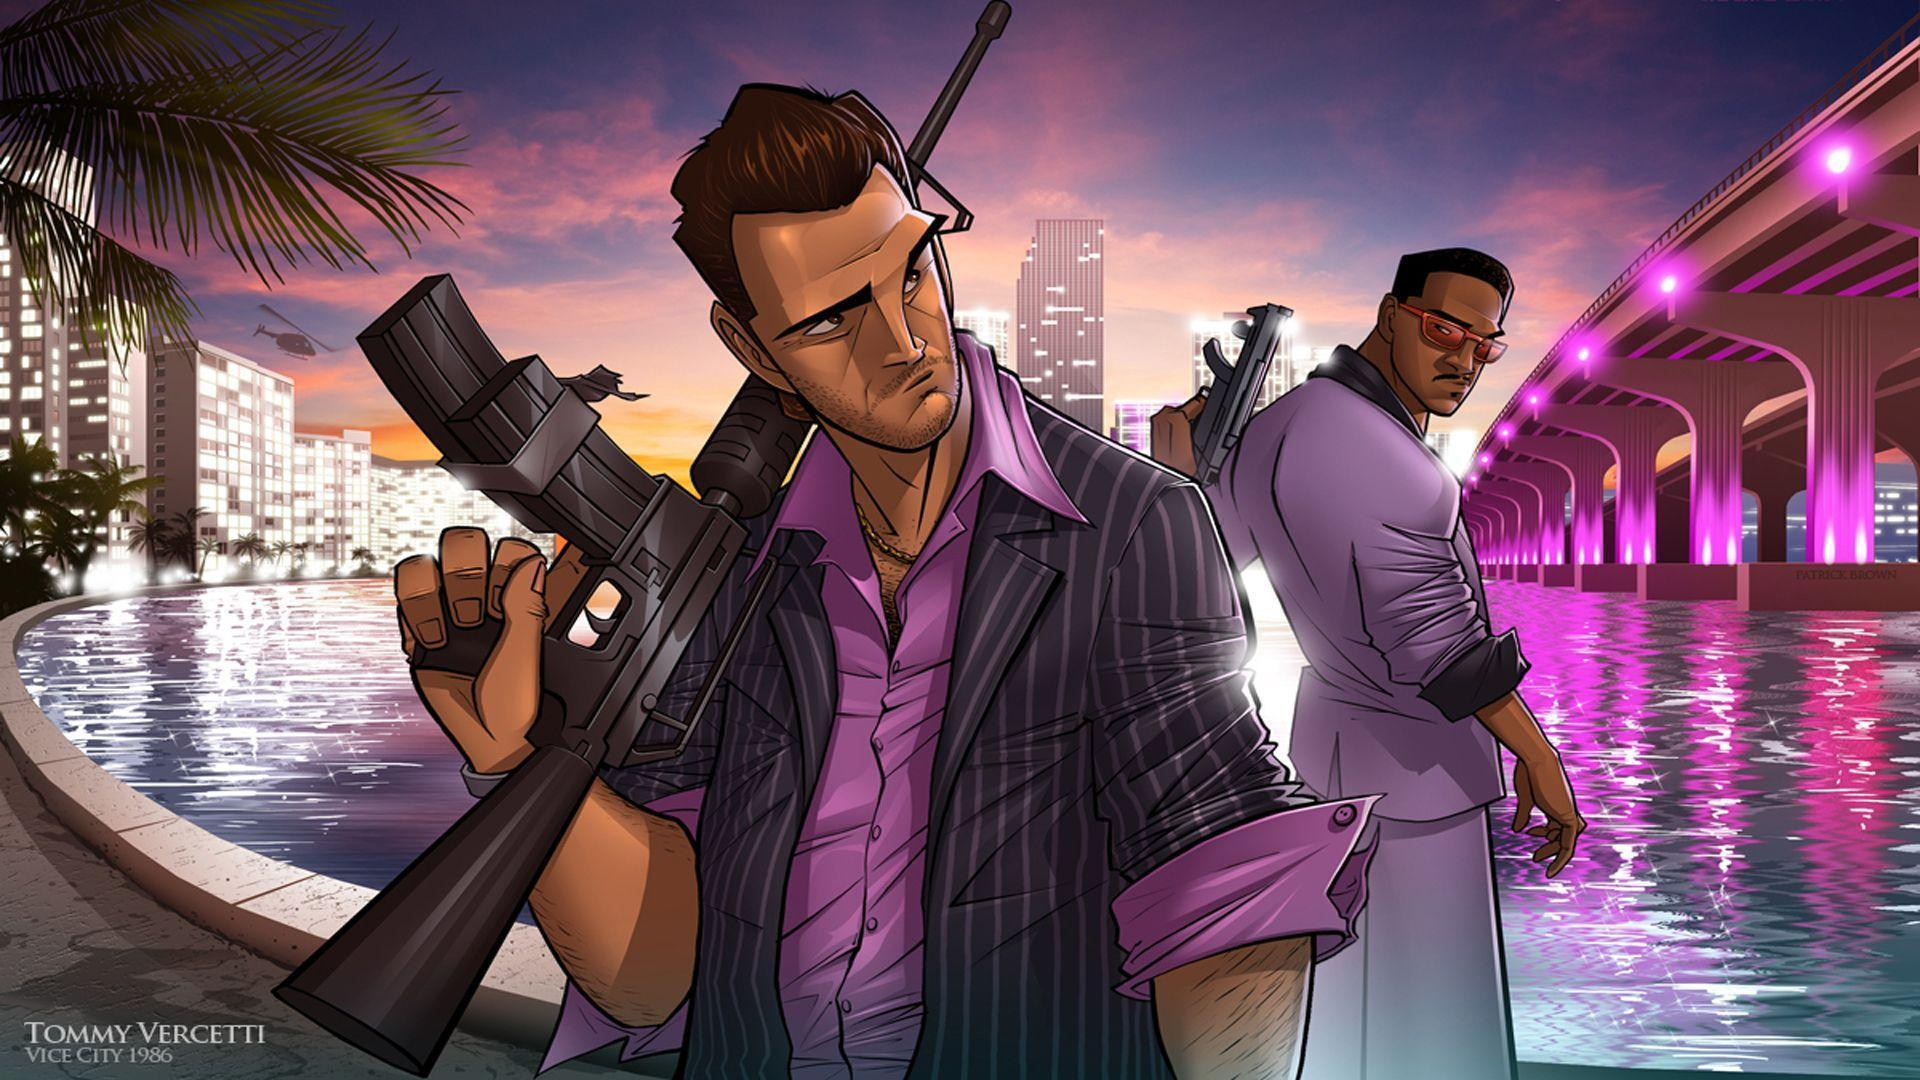 Full HD 1080p Vice city Wallpapers HD, Desktop Backgrounds